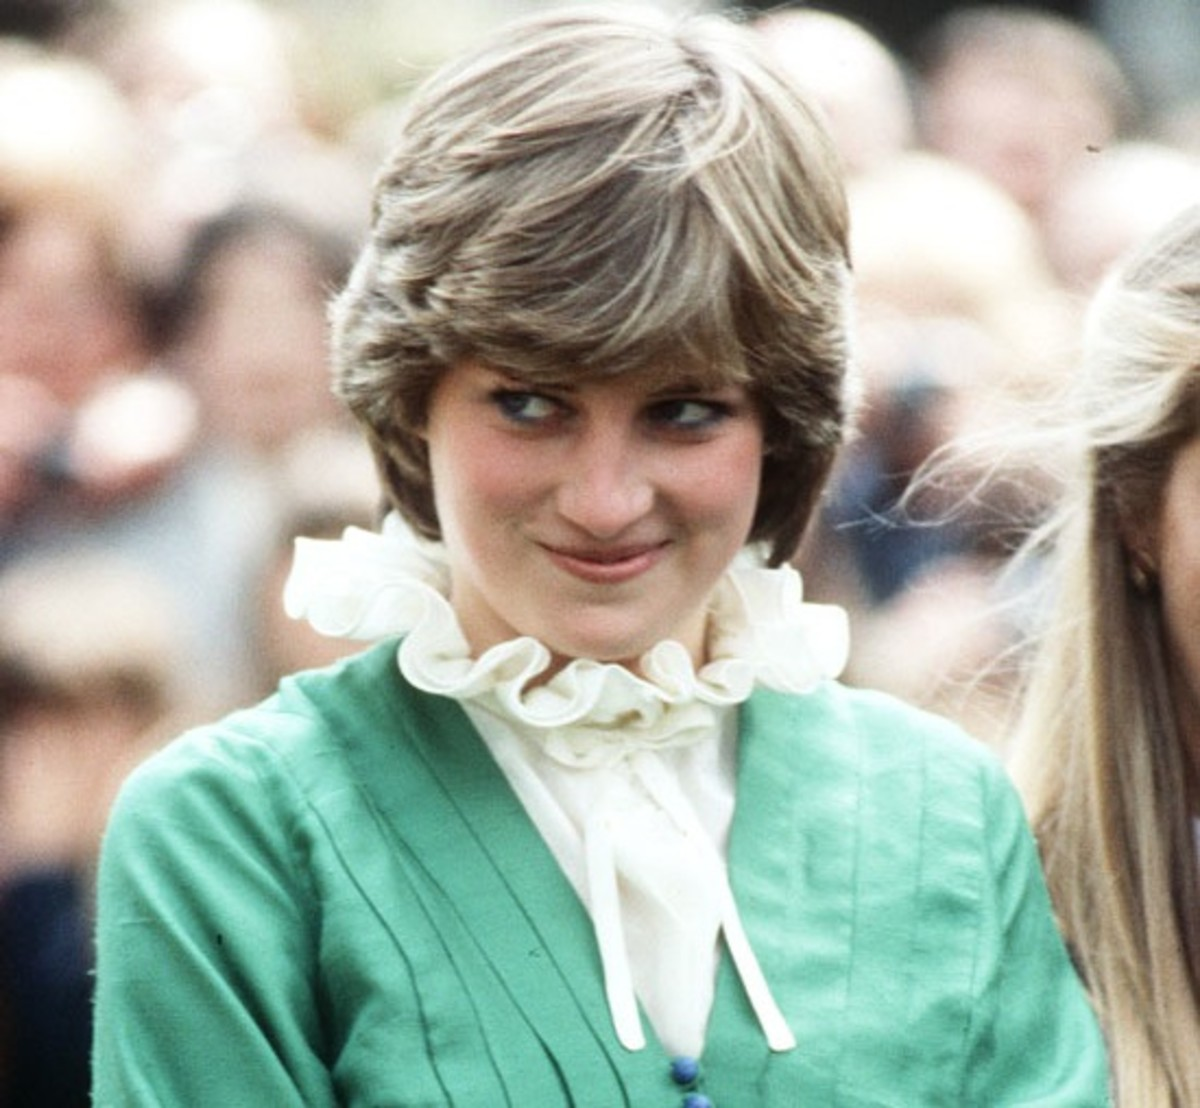 May 9, 1981 - Still Lady Diana Spencer, not yet the Princess of Wales, at Broadlands, UK Image from hdwallpapers